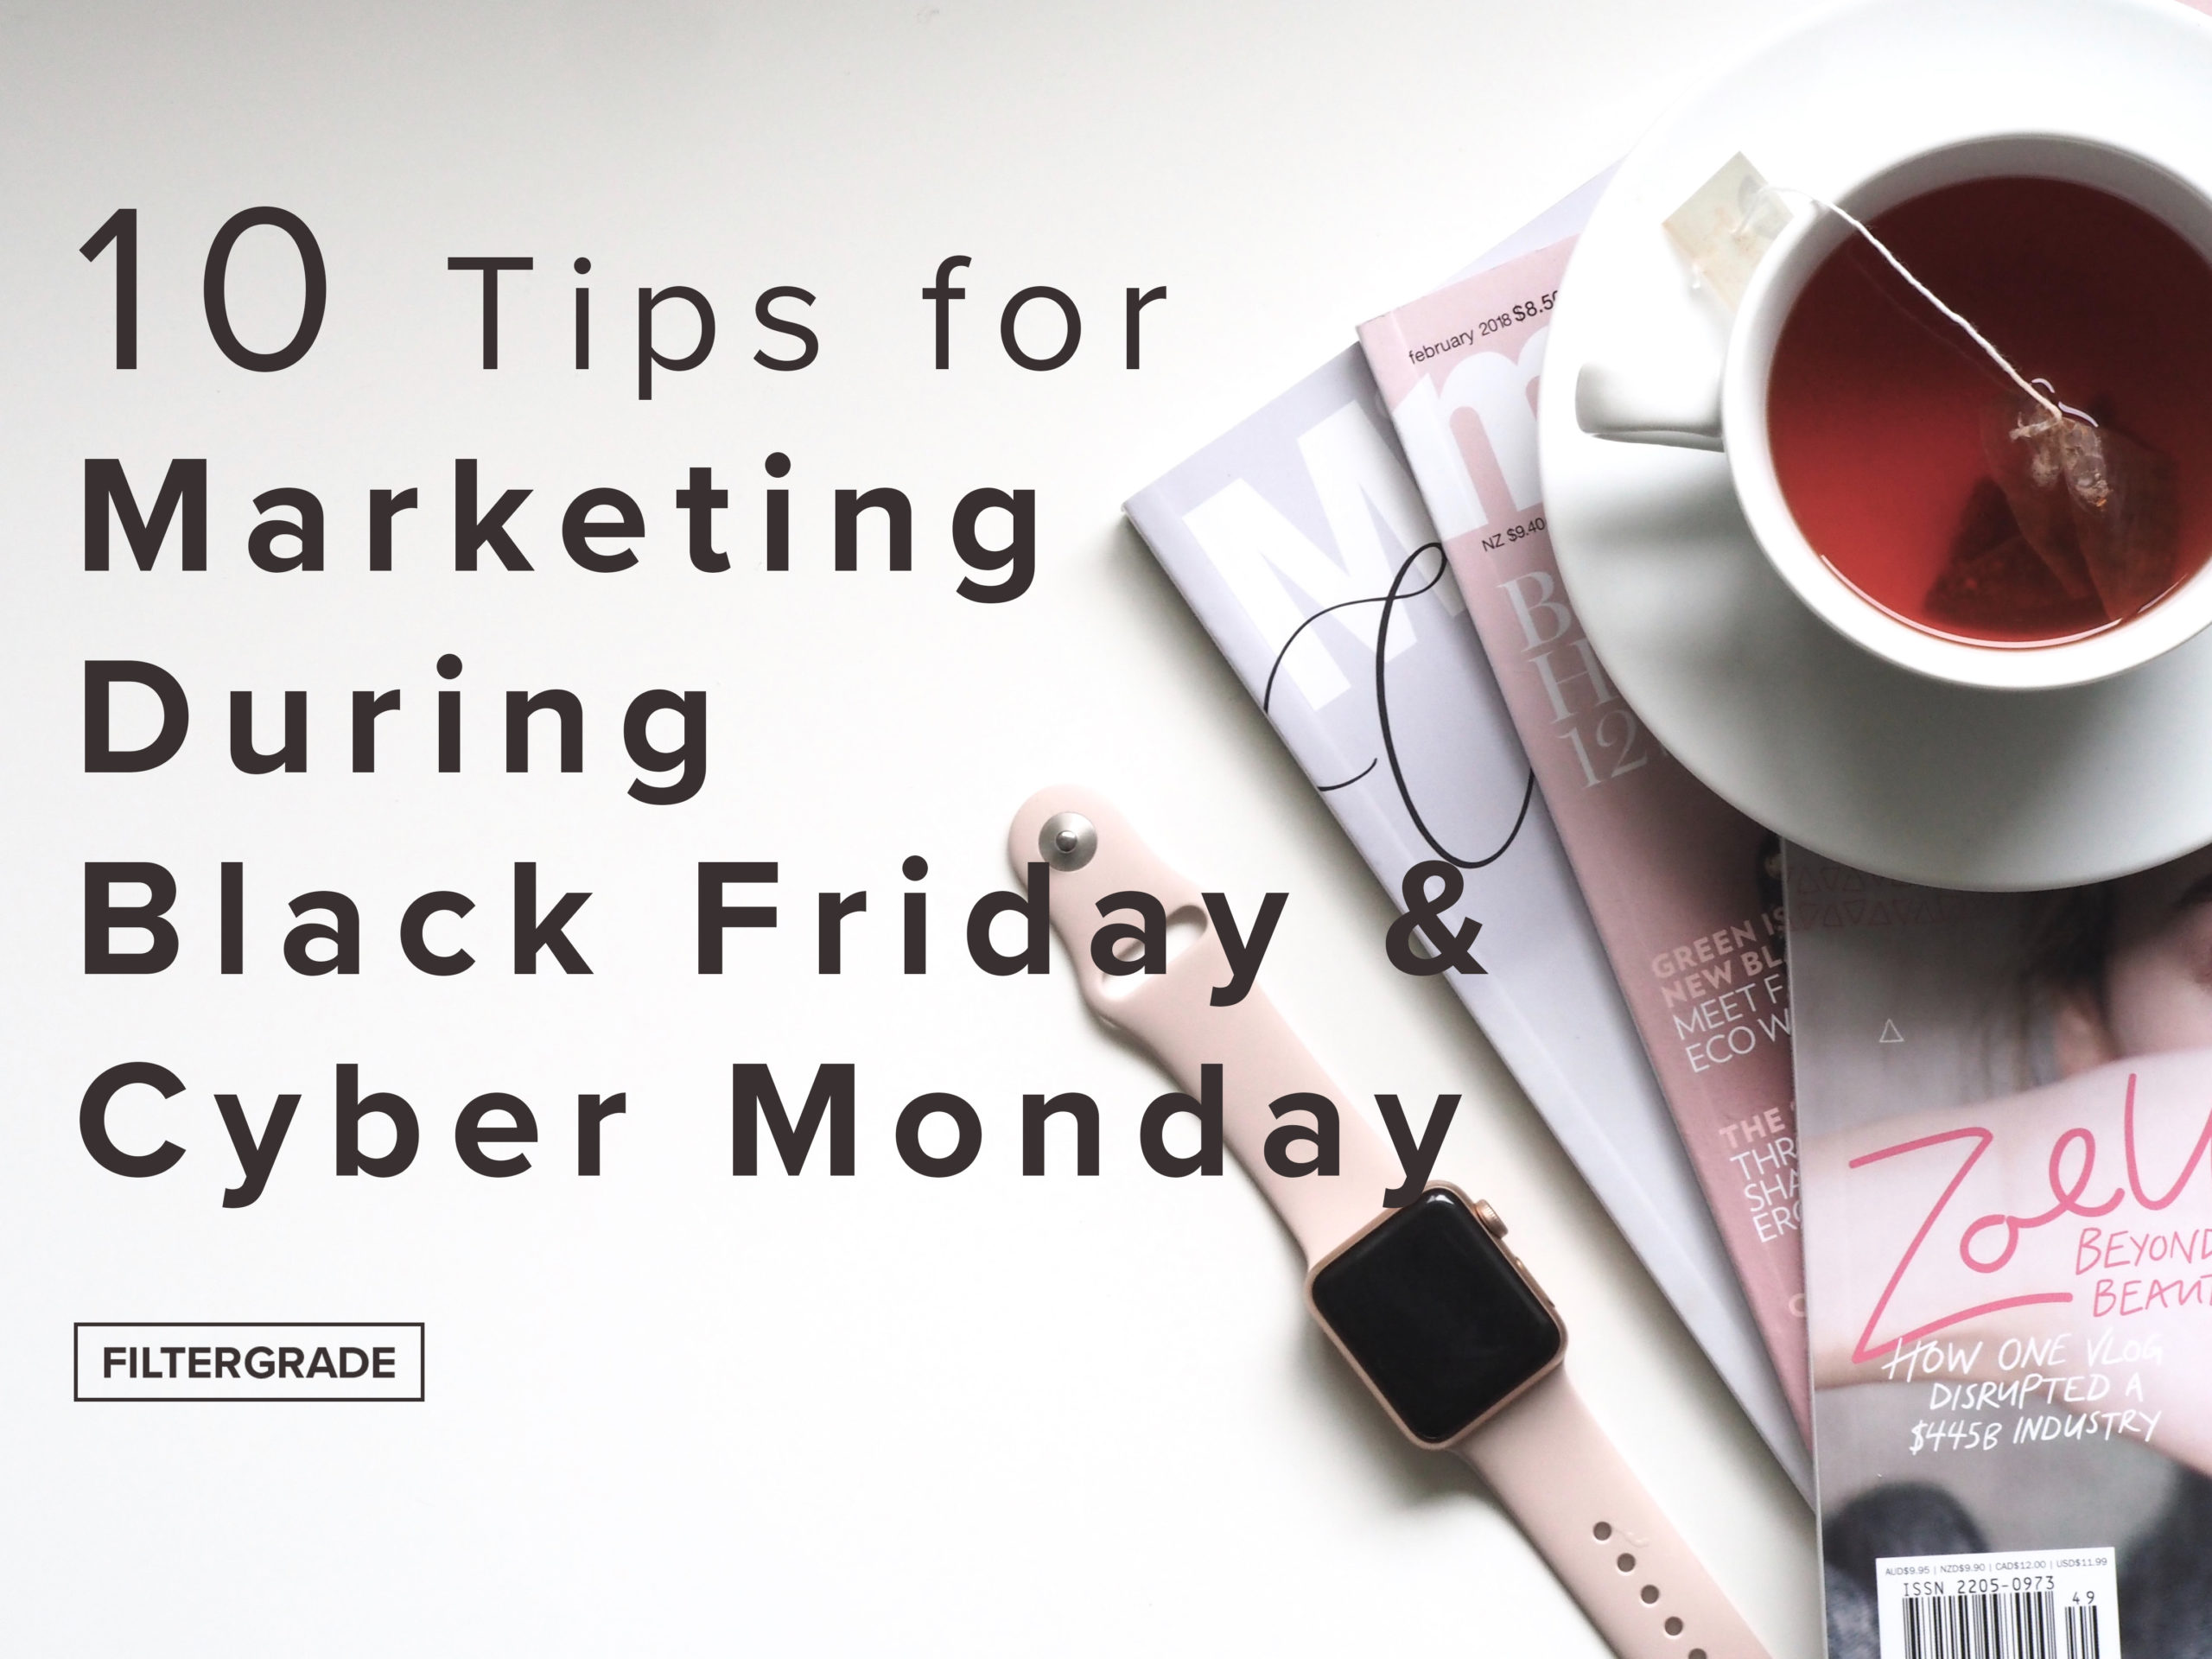 10 Tips for Marketing During Black Friday and Cyber Monday - FilterGrade